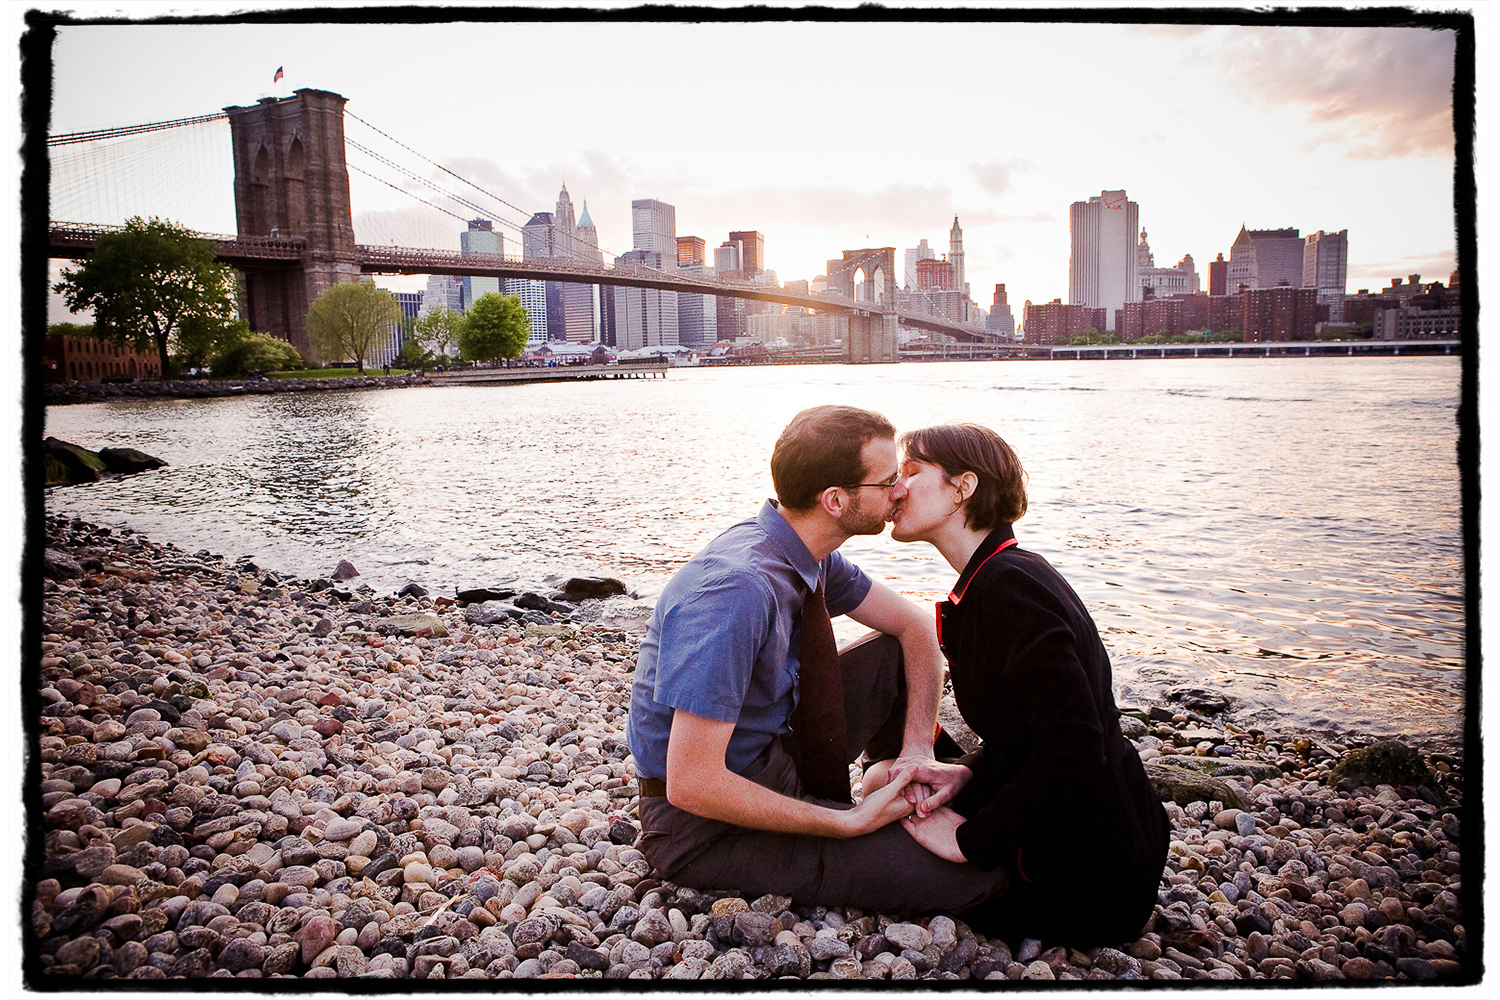 Engagement Portraits: Lindsay & Ben share a kiss on the pebbled beach in DUMBO, Brooklyn.